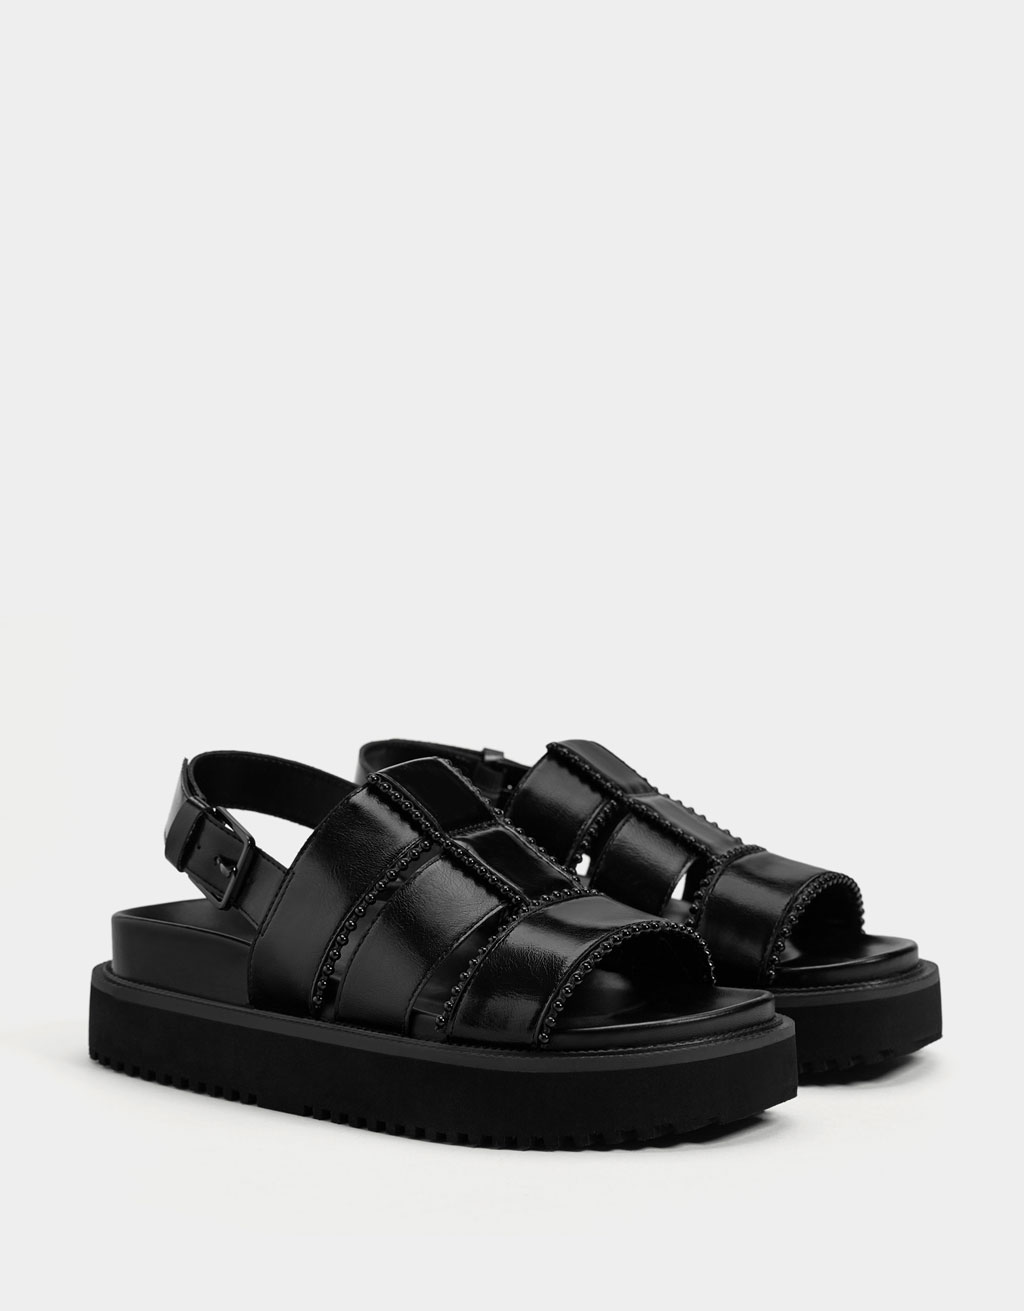 24a4b290f Shoes - COLLECTION - WOMEN - Bershka United States